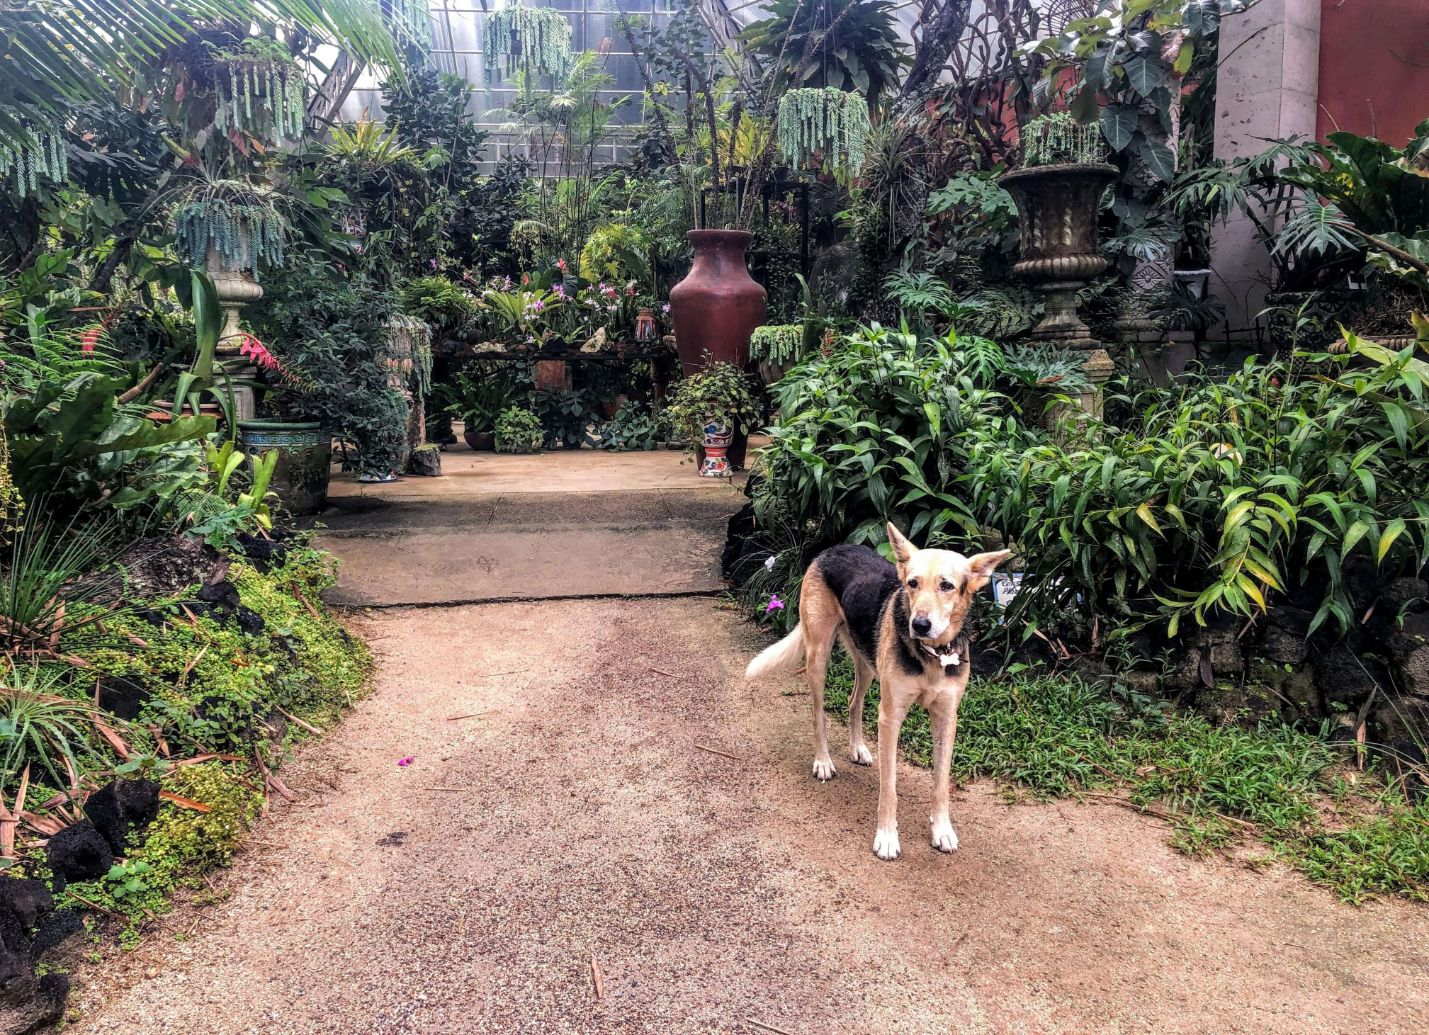 Domino the dog at the Vallarta Botanical Gardens